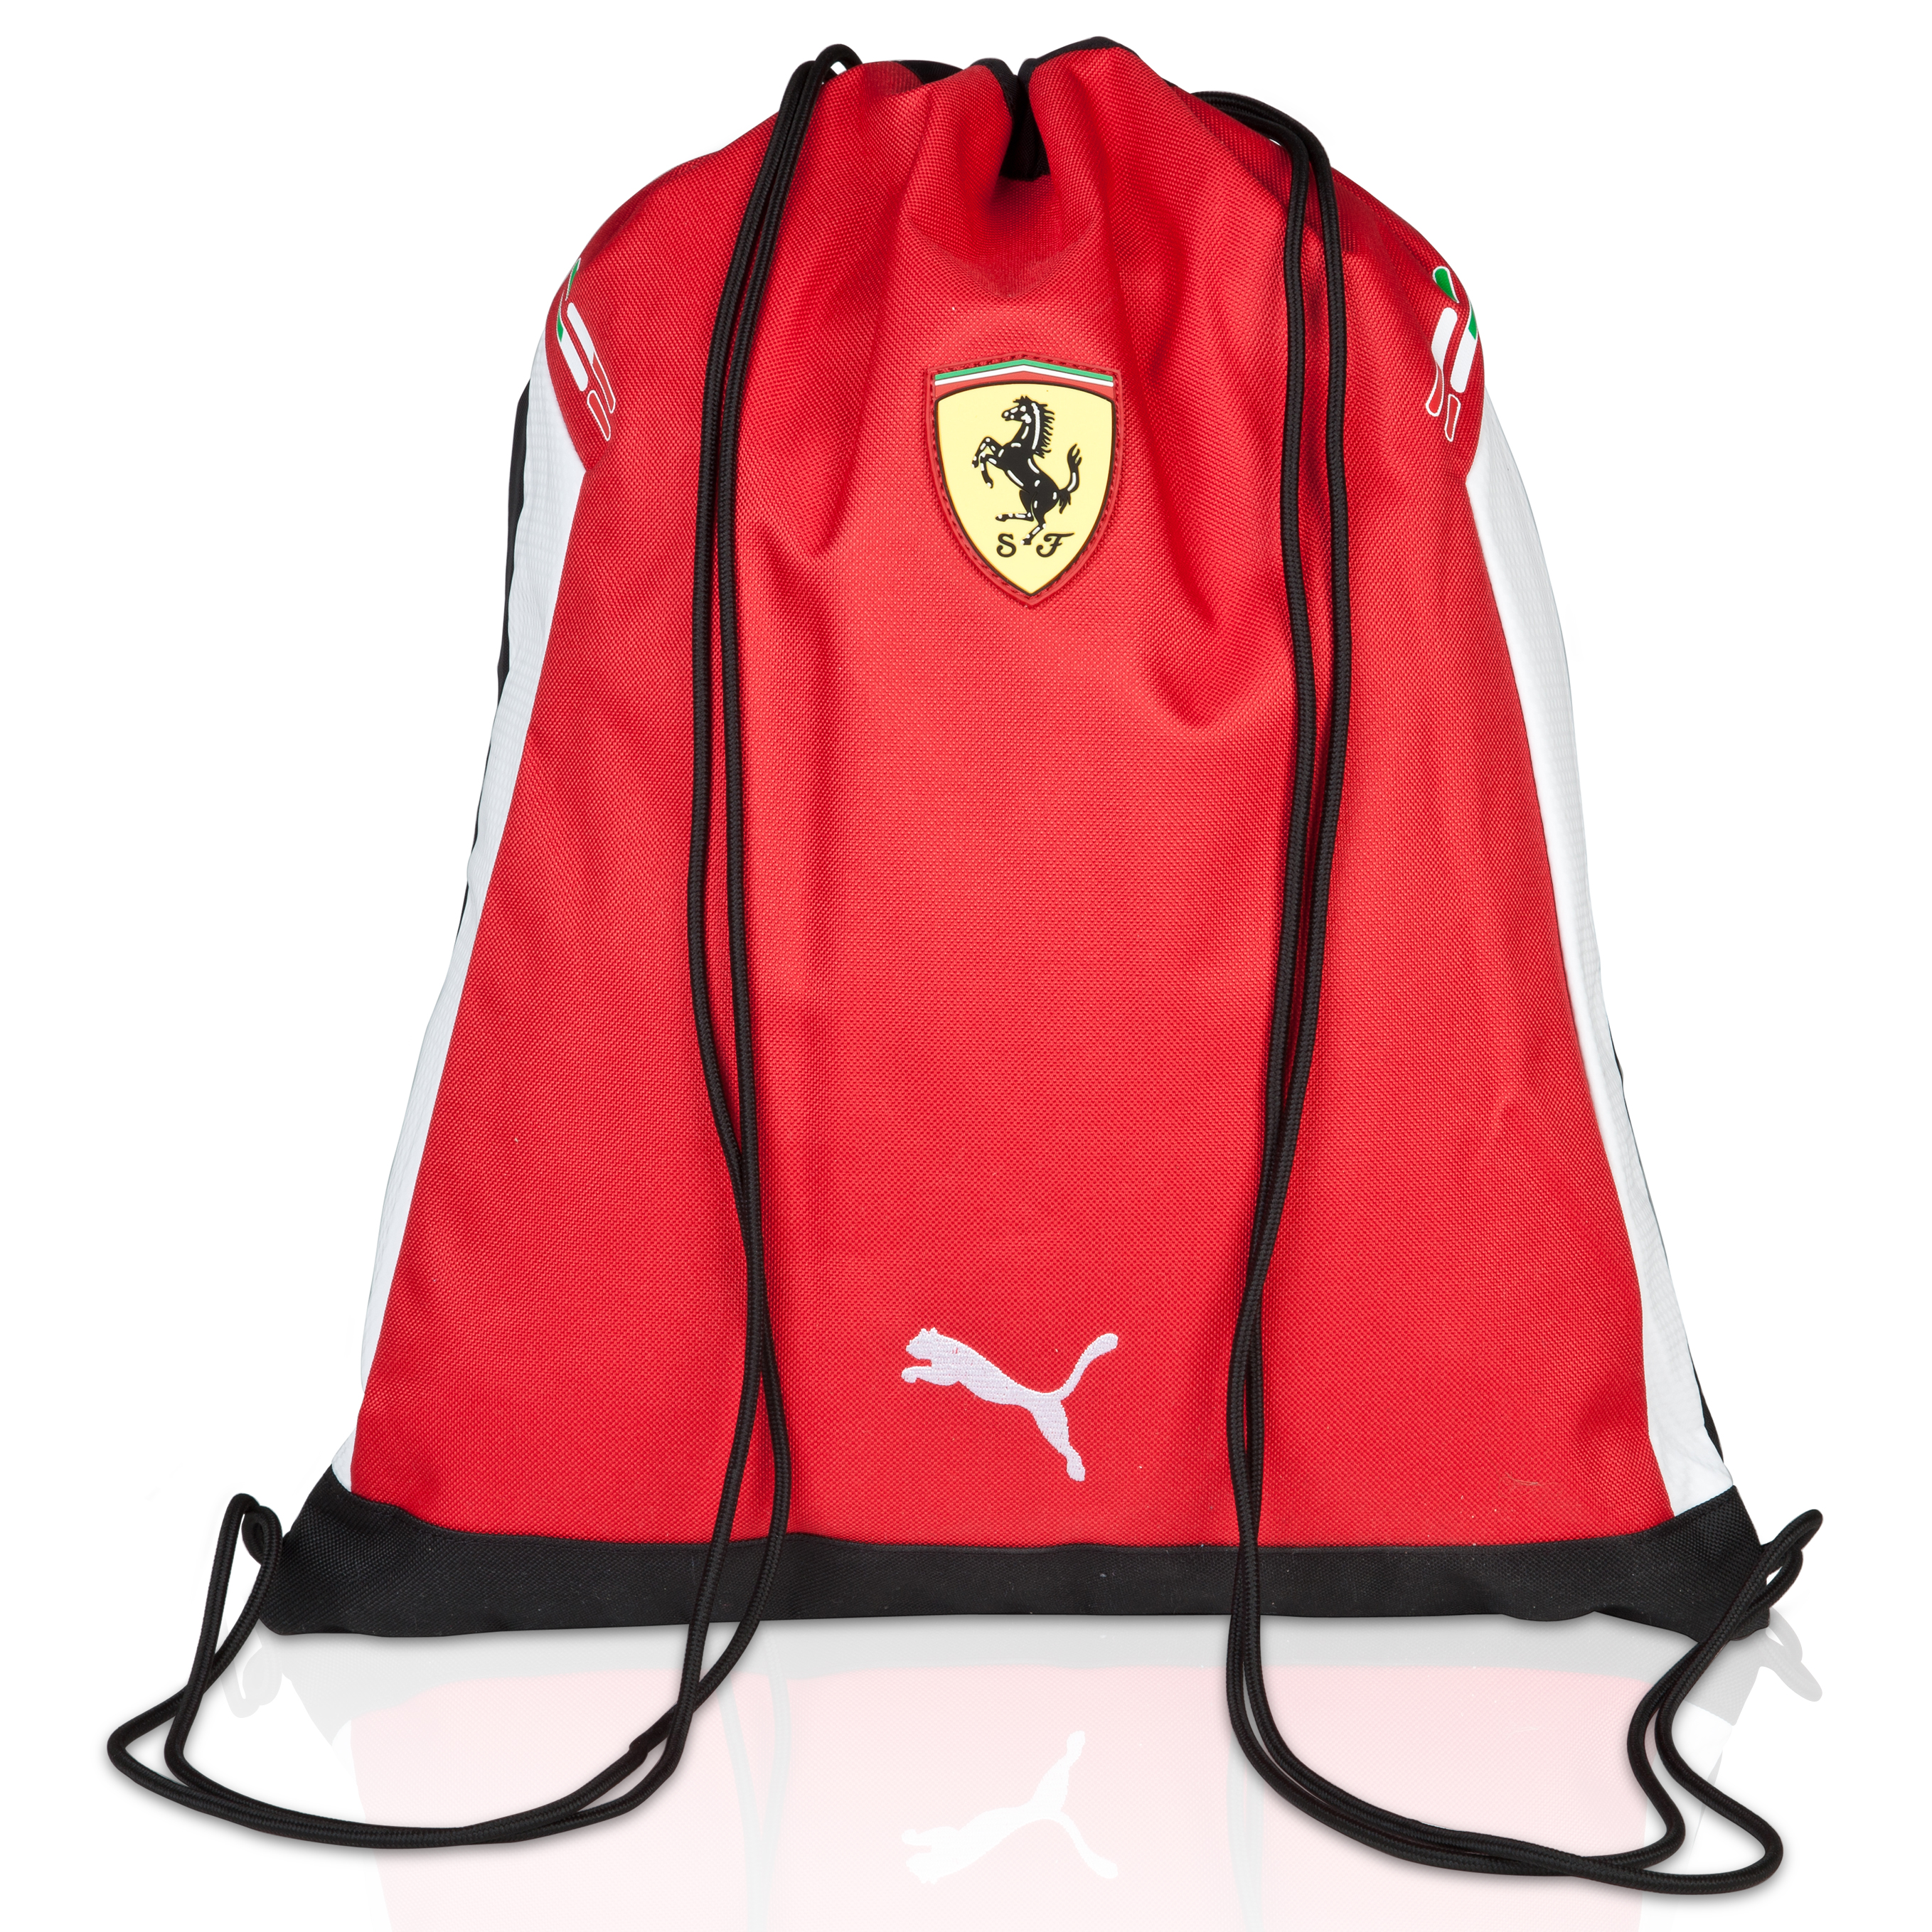 Scuderia Ferrari Replica Gym Sack - Rosso Corsa/White/Black